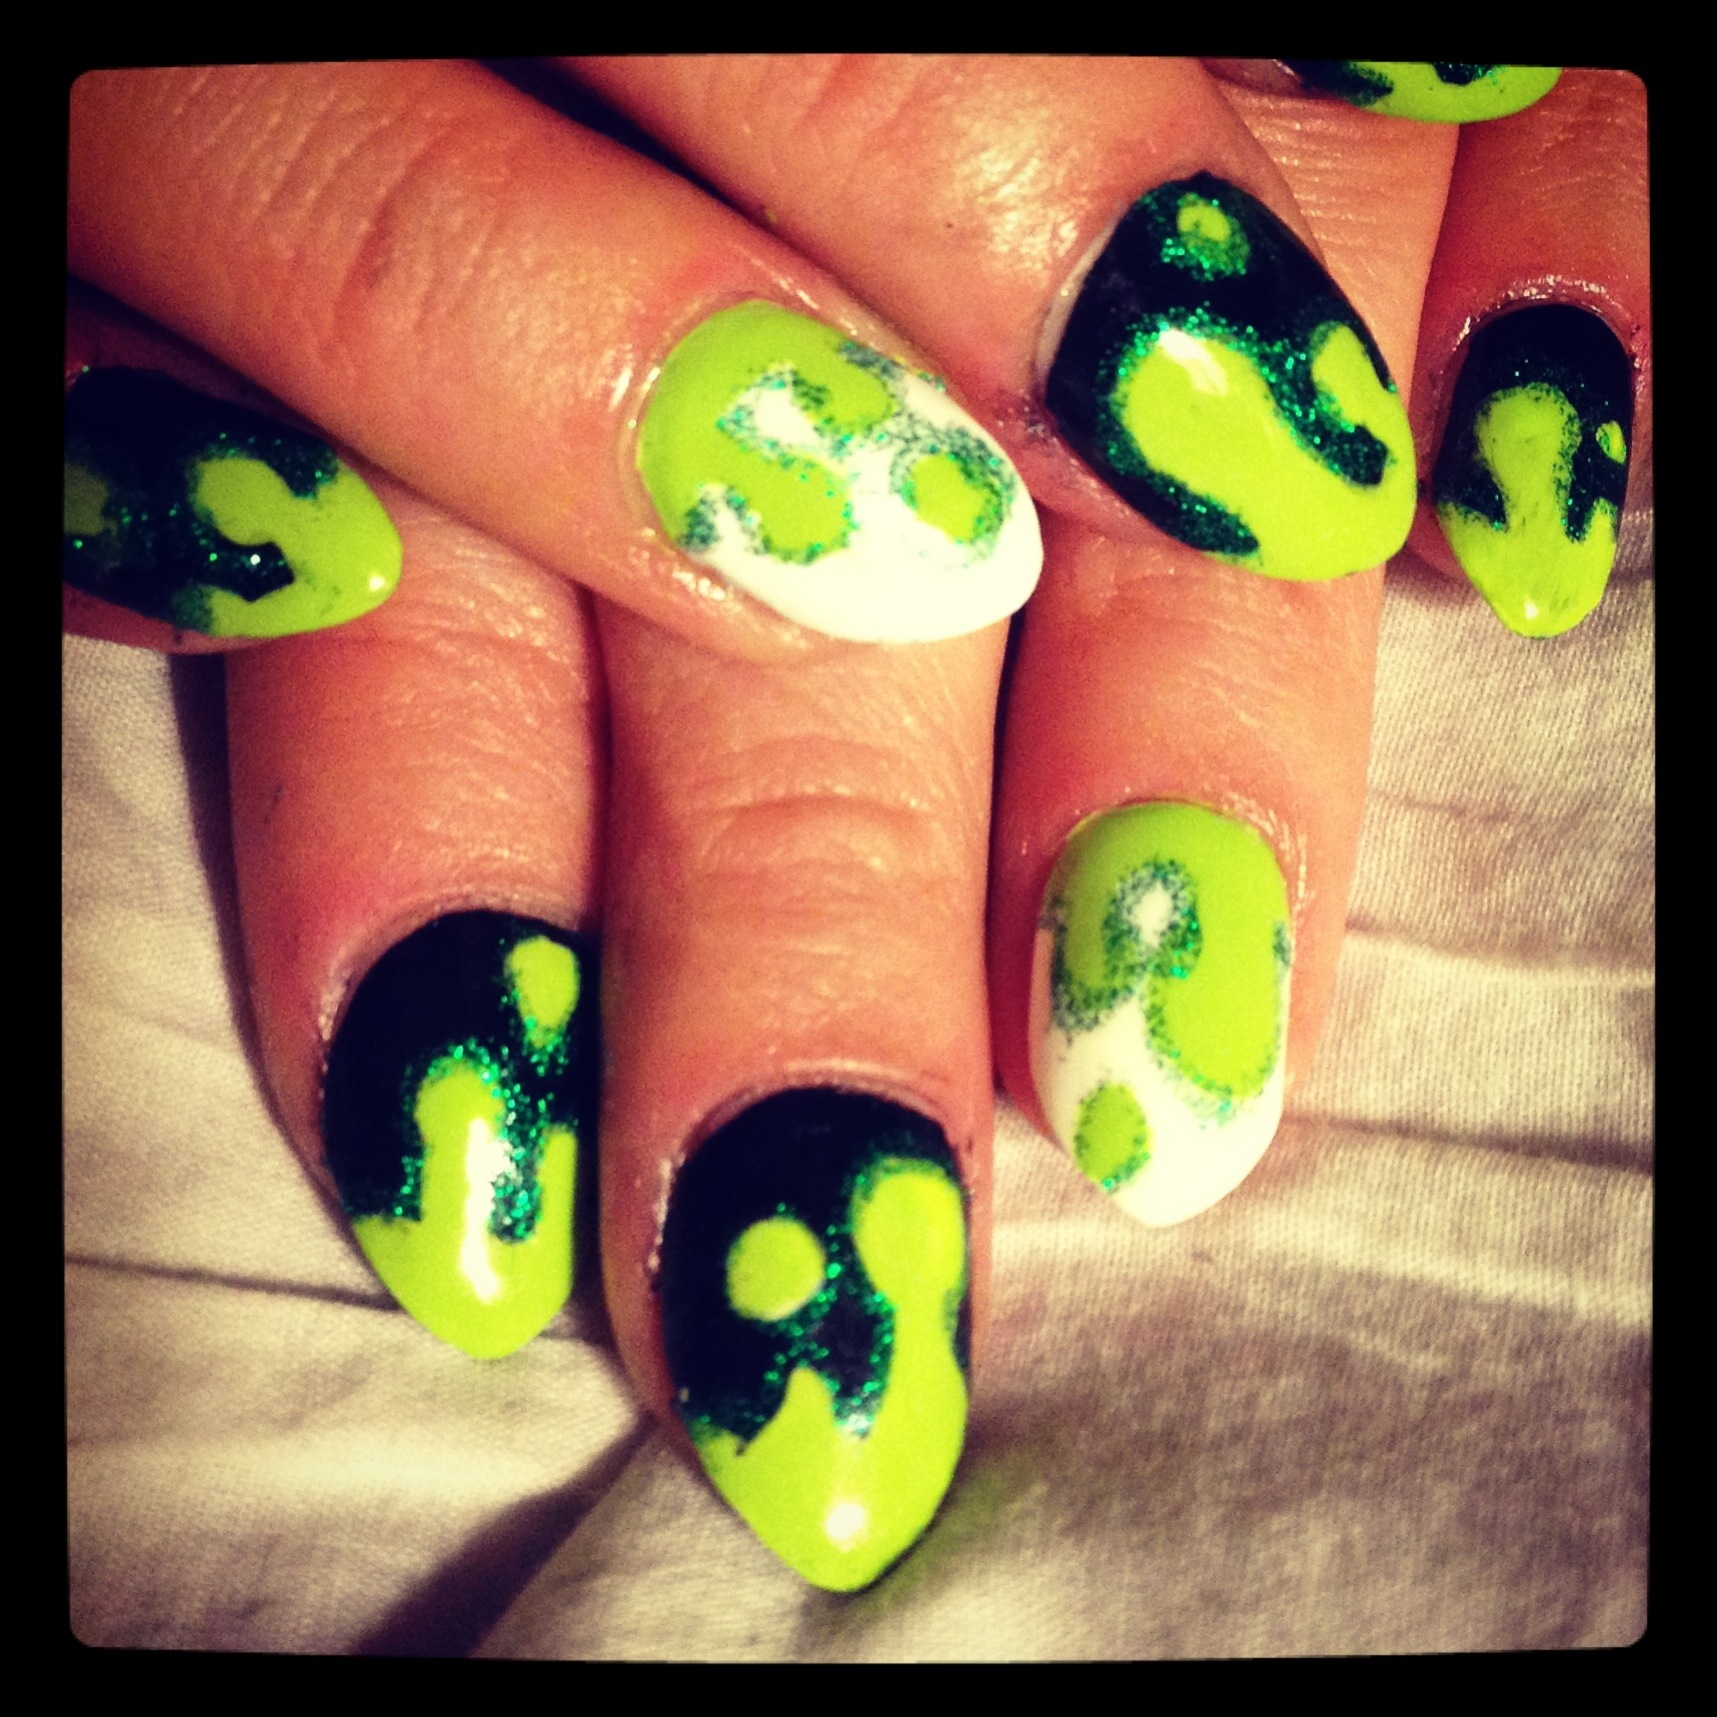 """slimy Halloween nails</em>"""" class=""""alignnone size-full"""" /></a></p> <p><a href="""